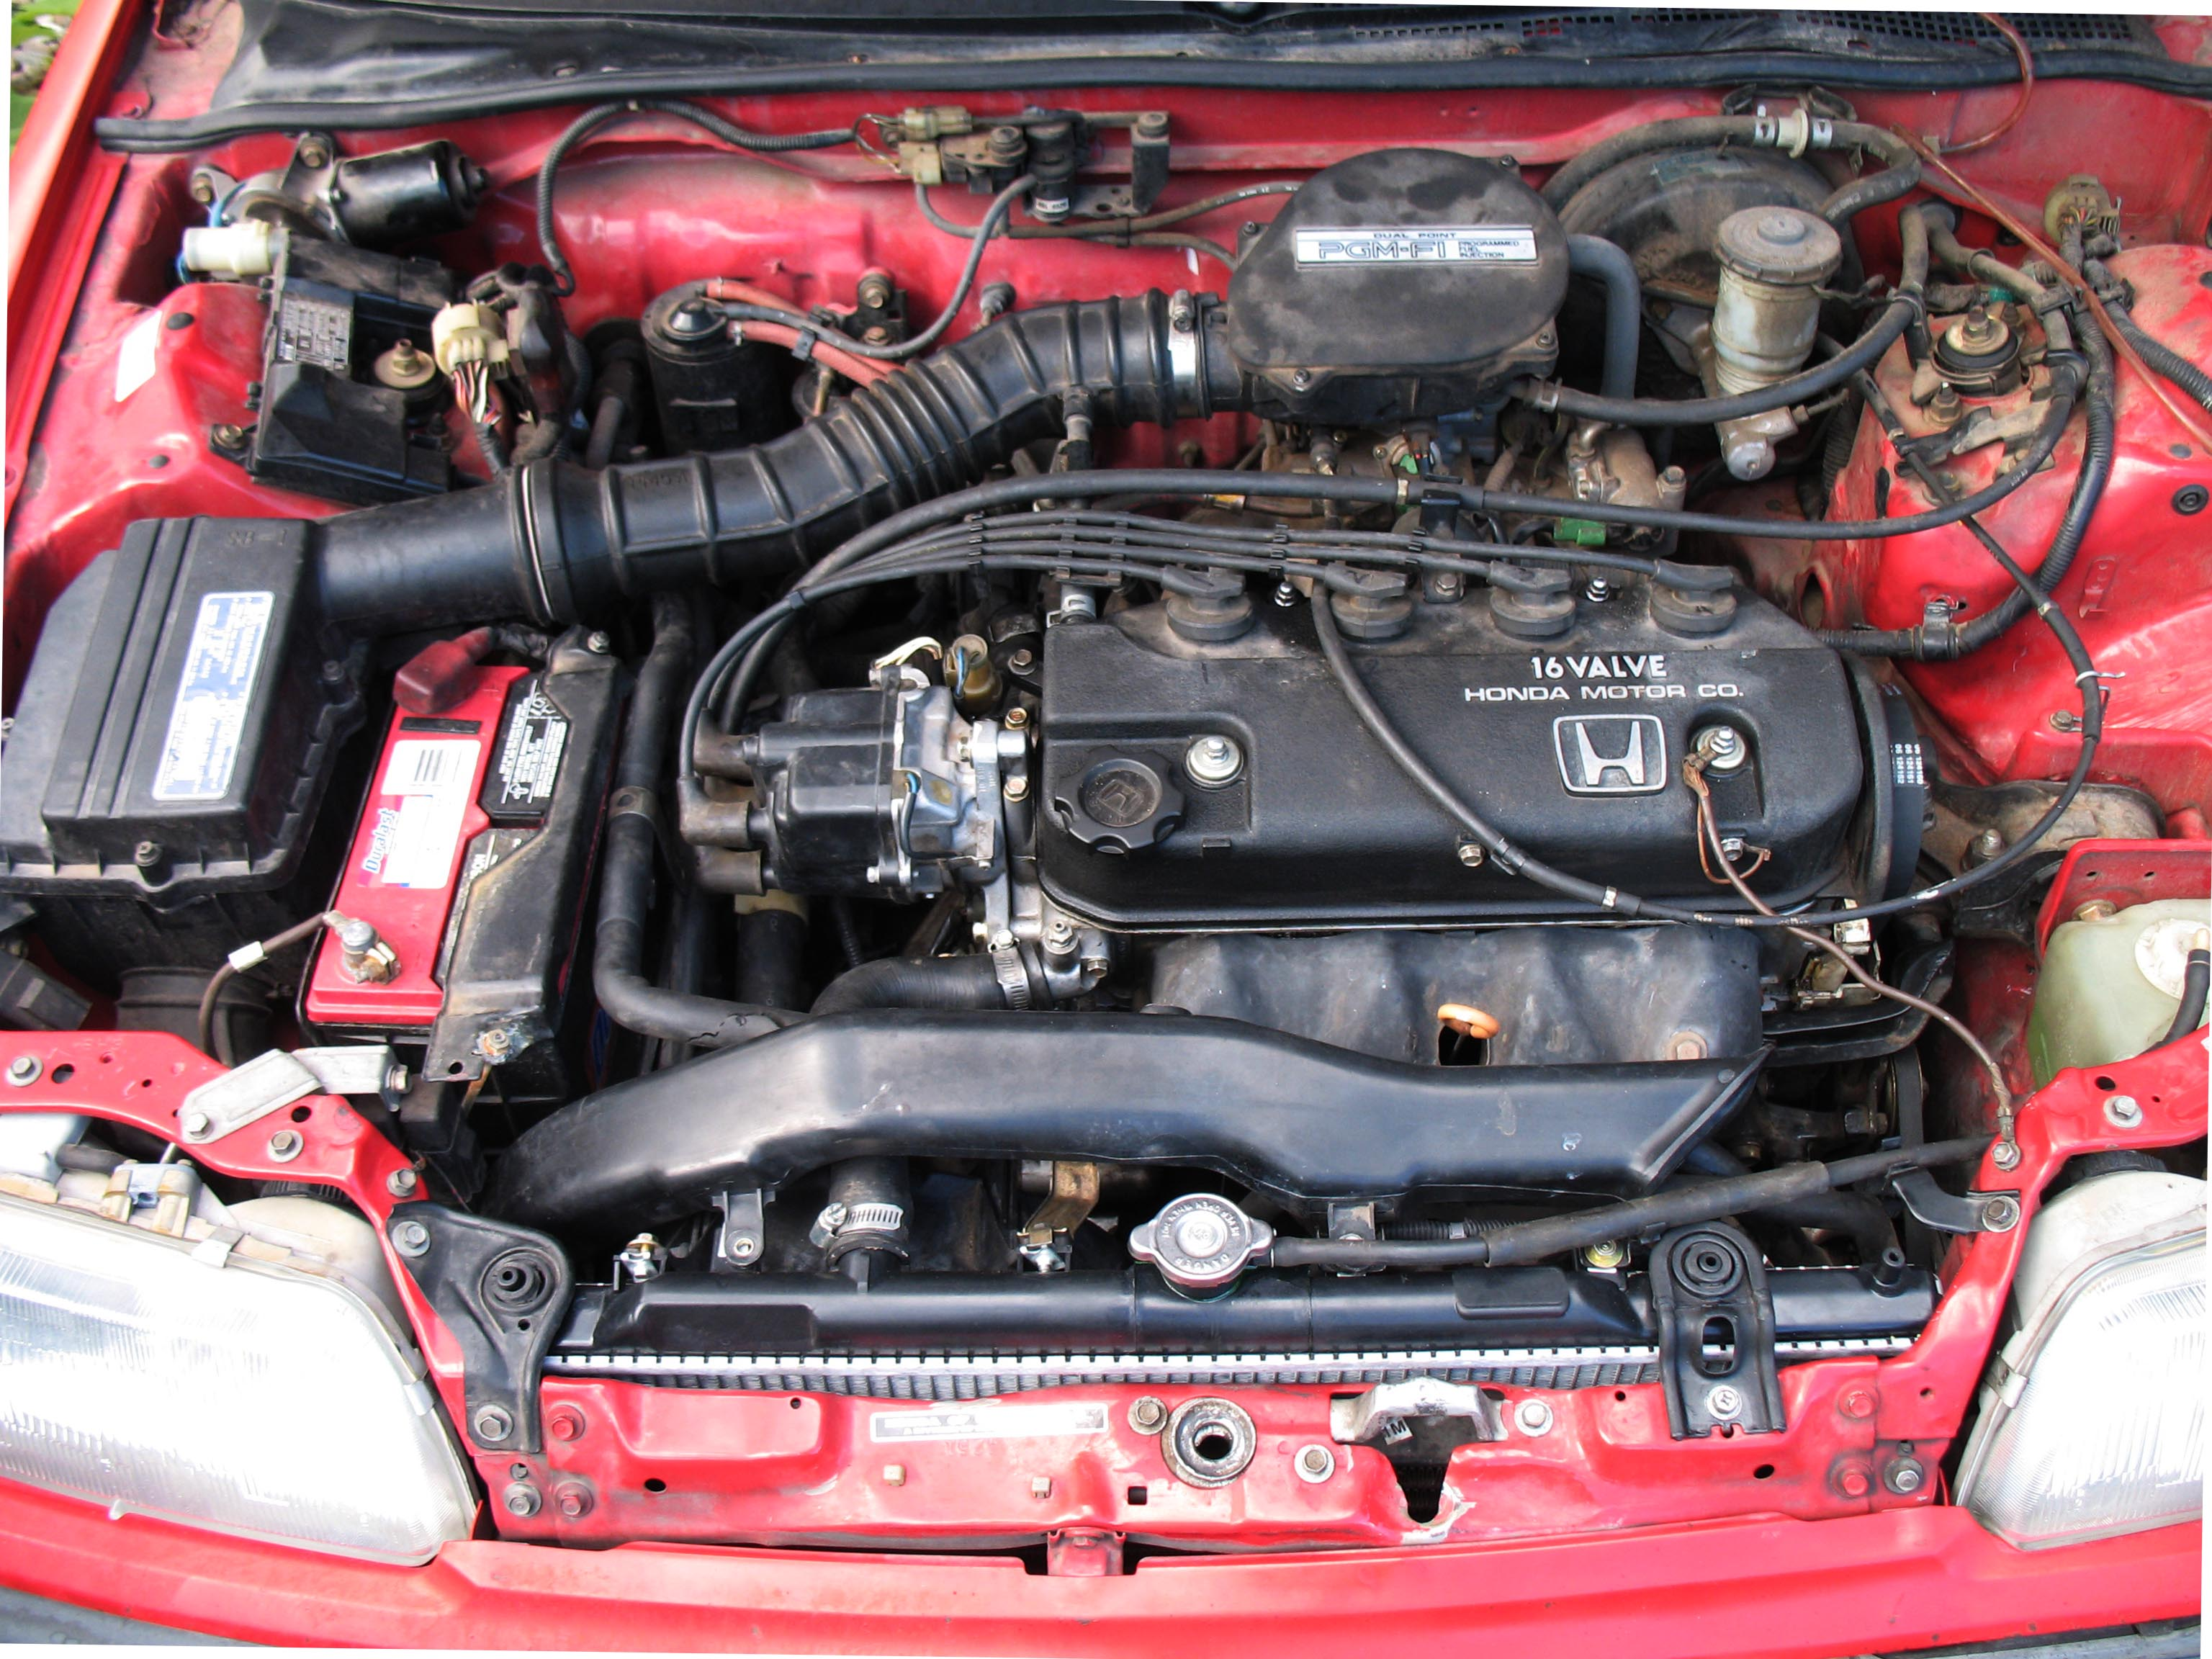 Head Gasket Replacement on '91 Honda Civic : 8 Steps - InstructablesInstructables